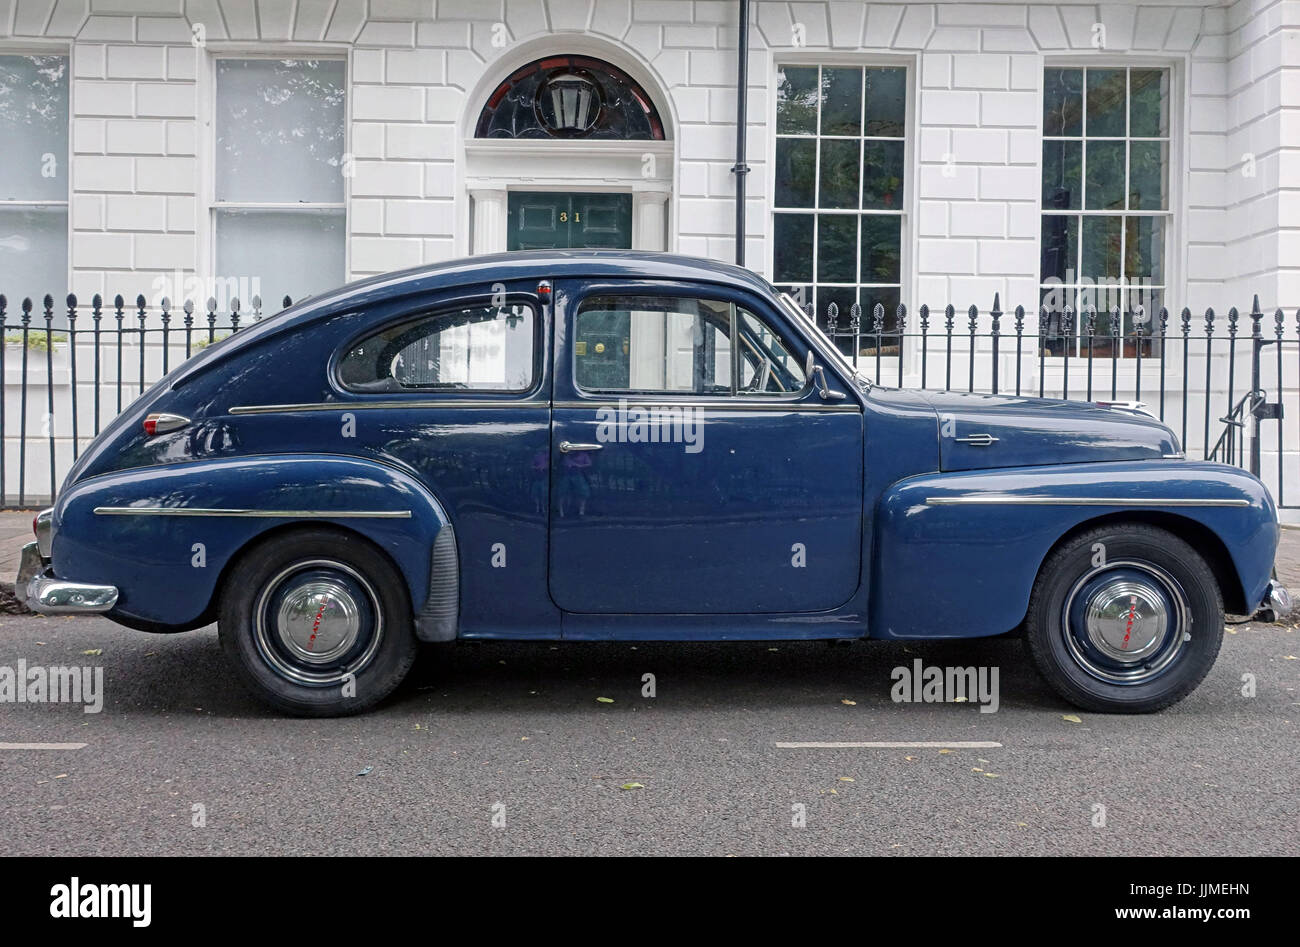 Classic Volvo PV544 car from 1950s - 1960s, London - Stock Image